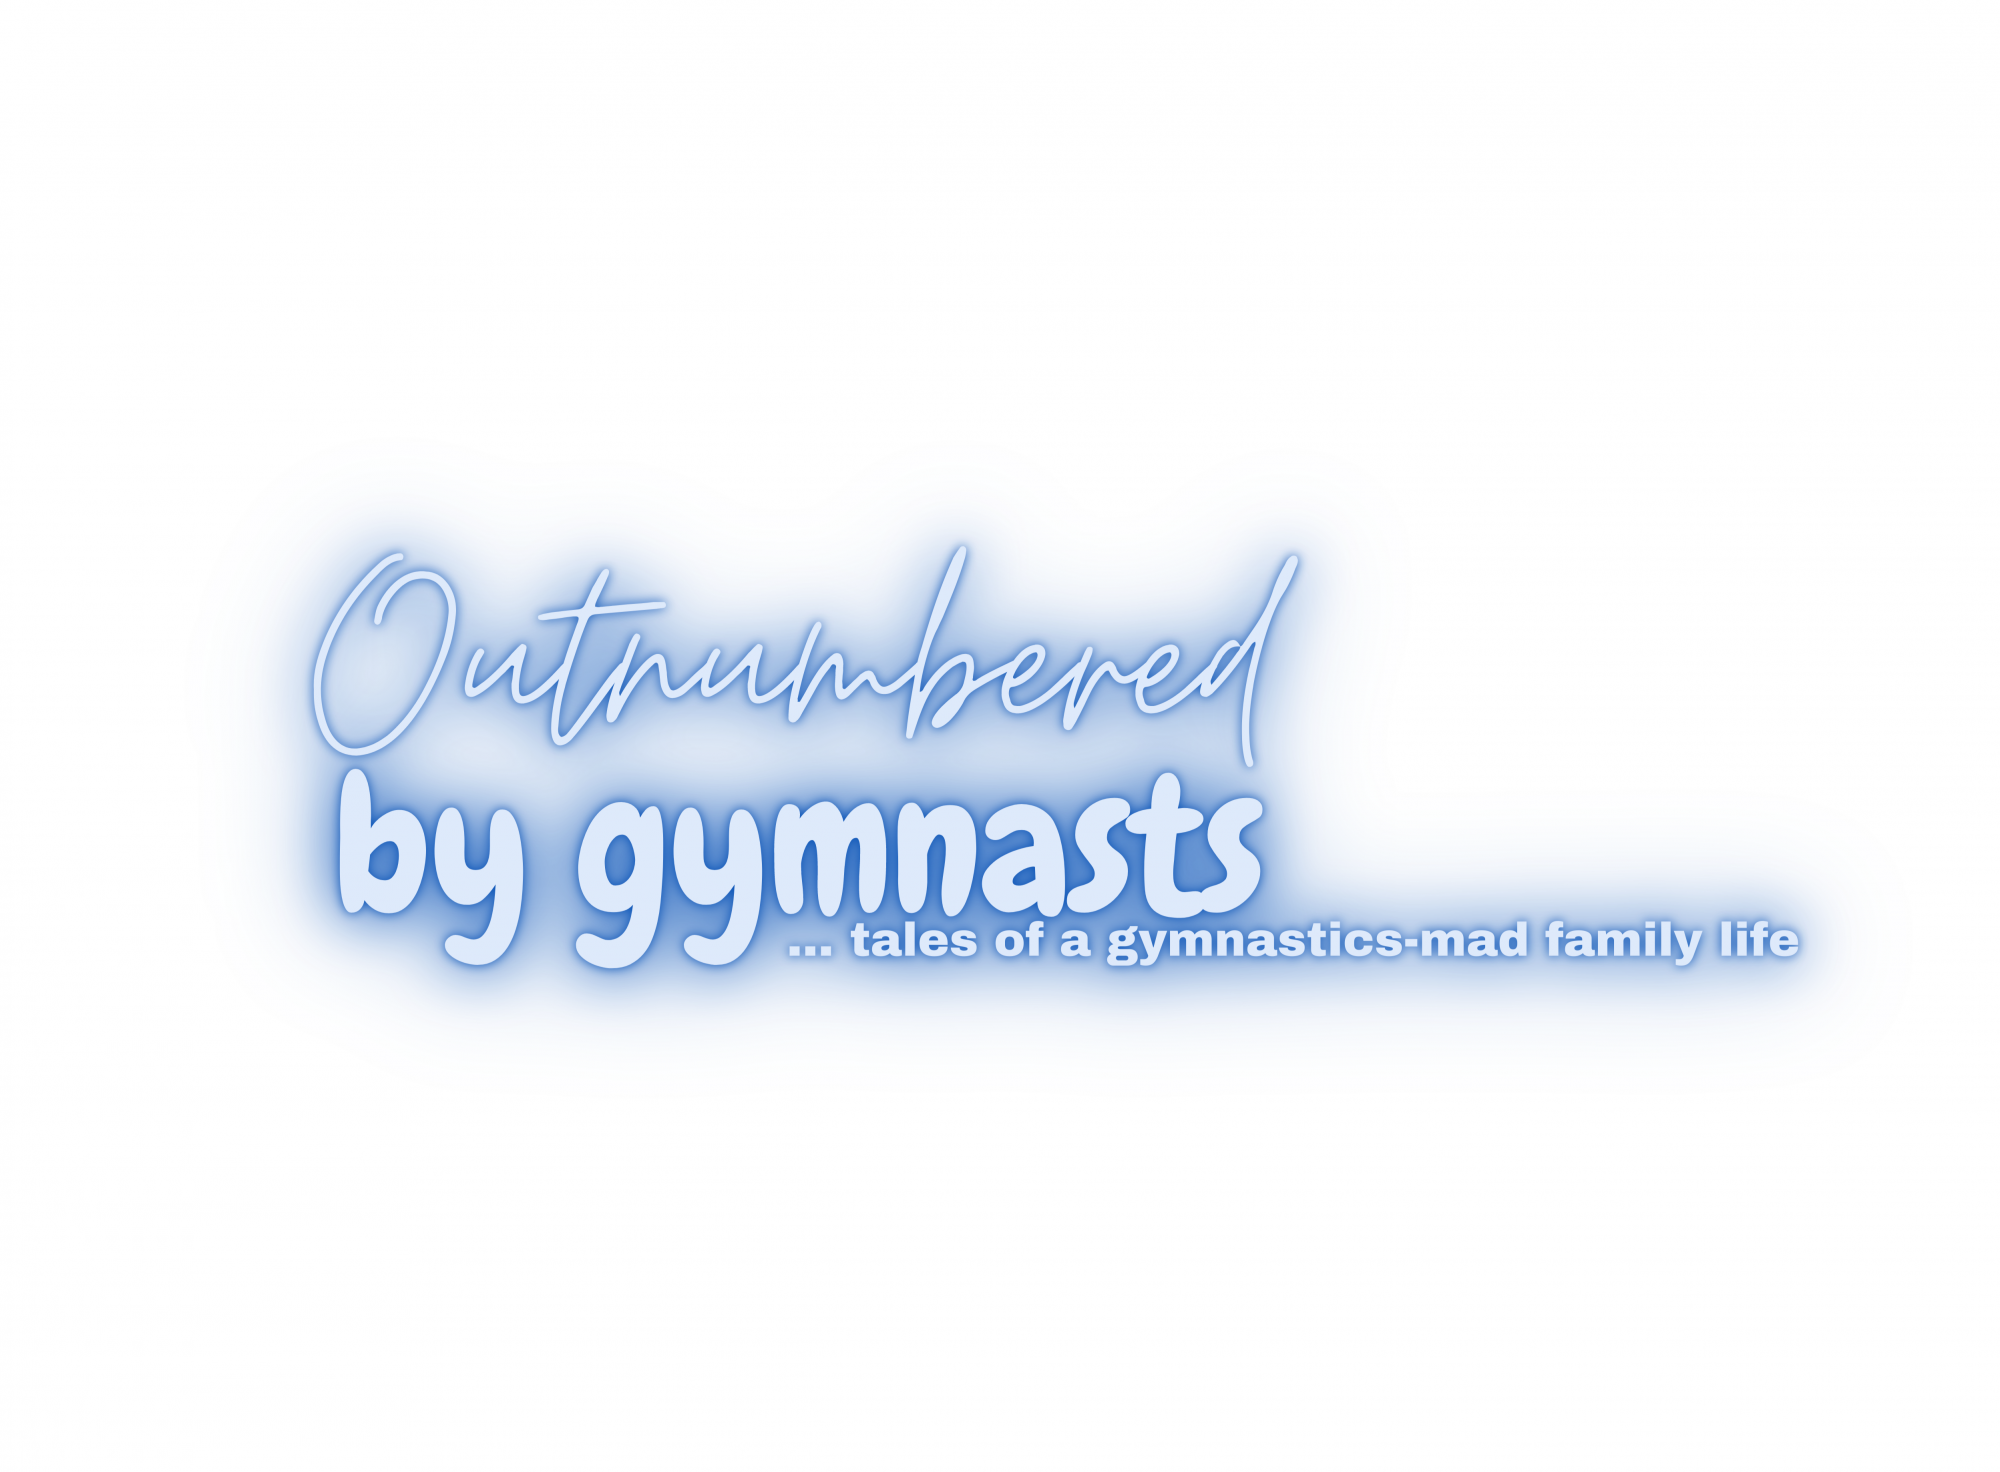 Outnumbered by gymnasts